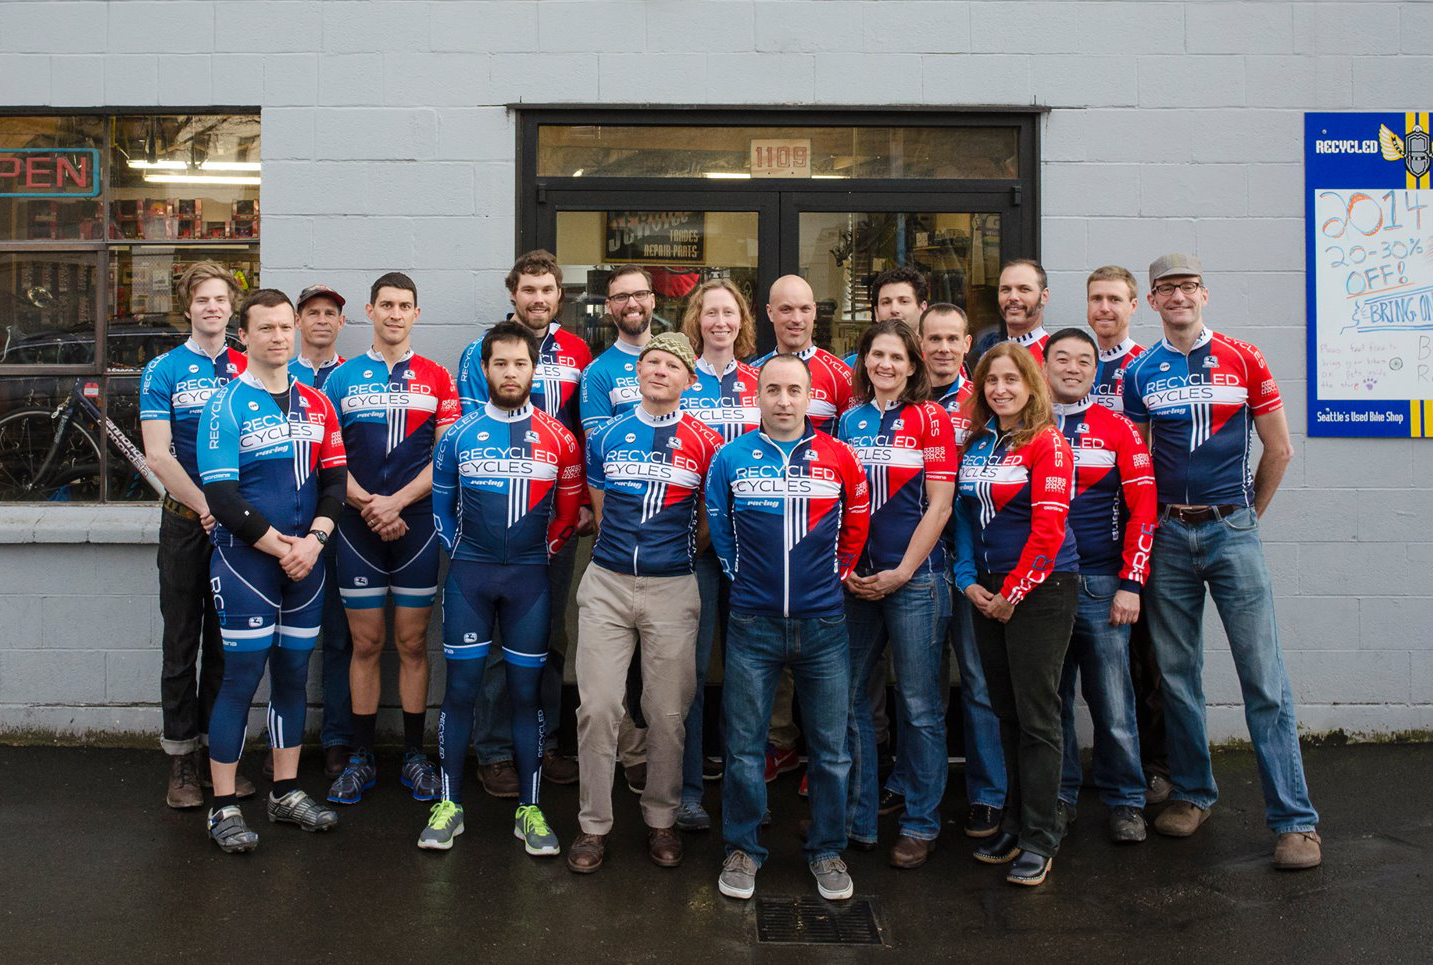 The 2015 Recycled Cycles Cycling team.